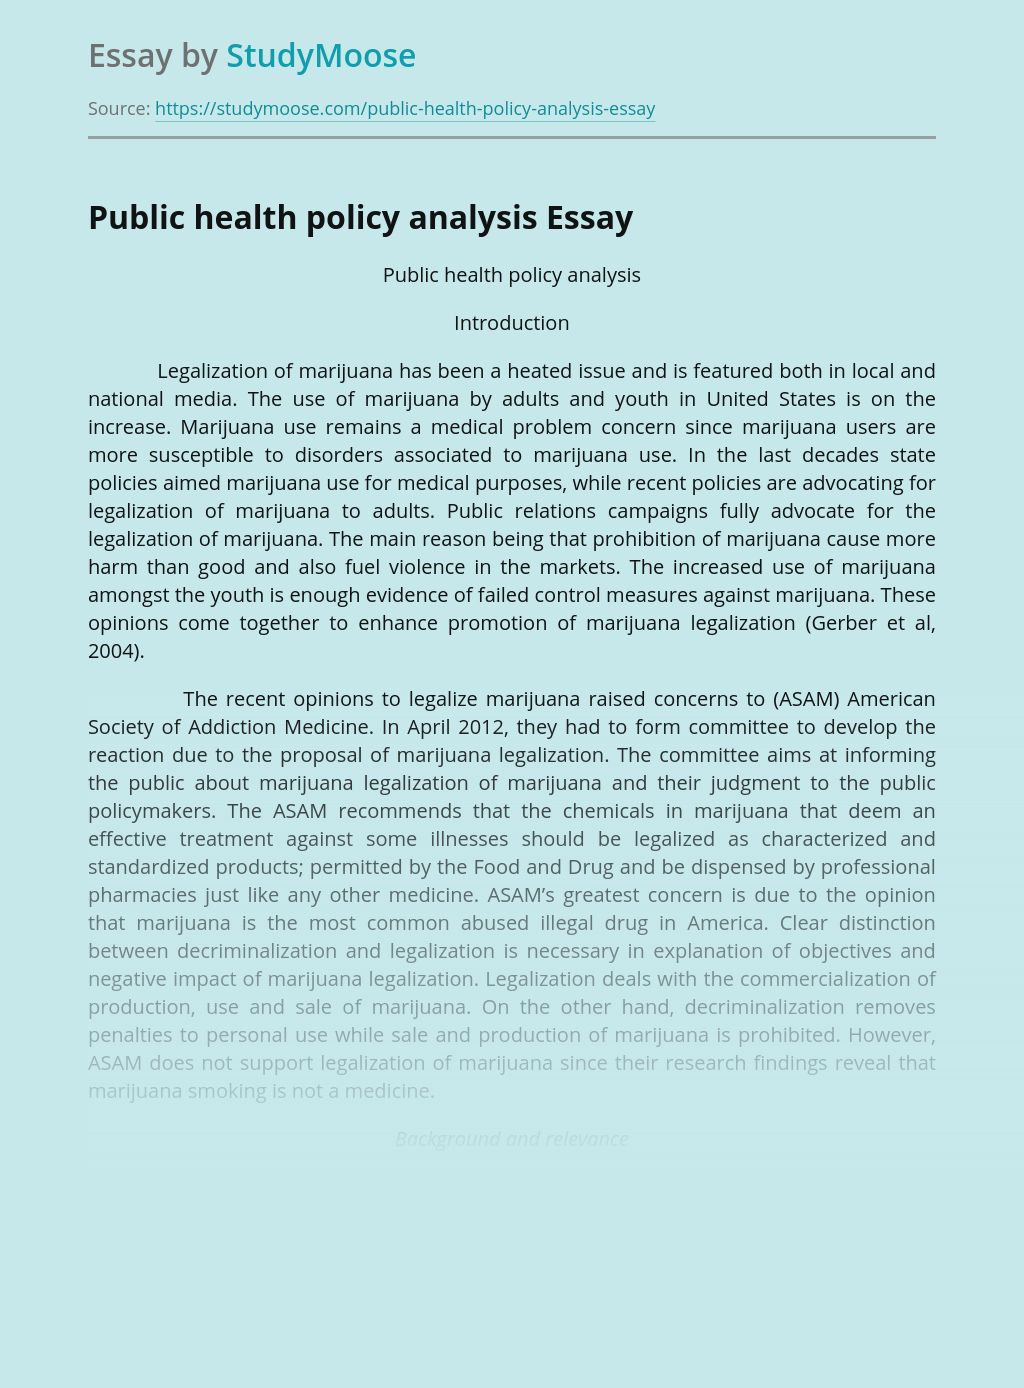 Public health policy analysis